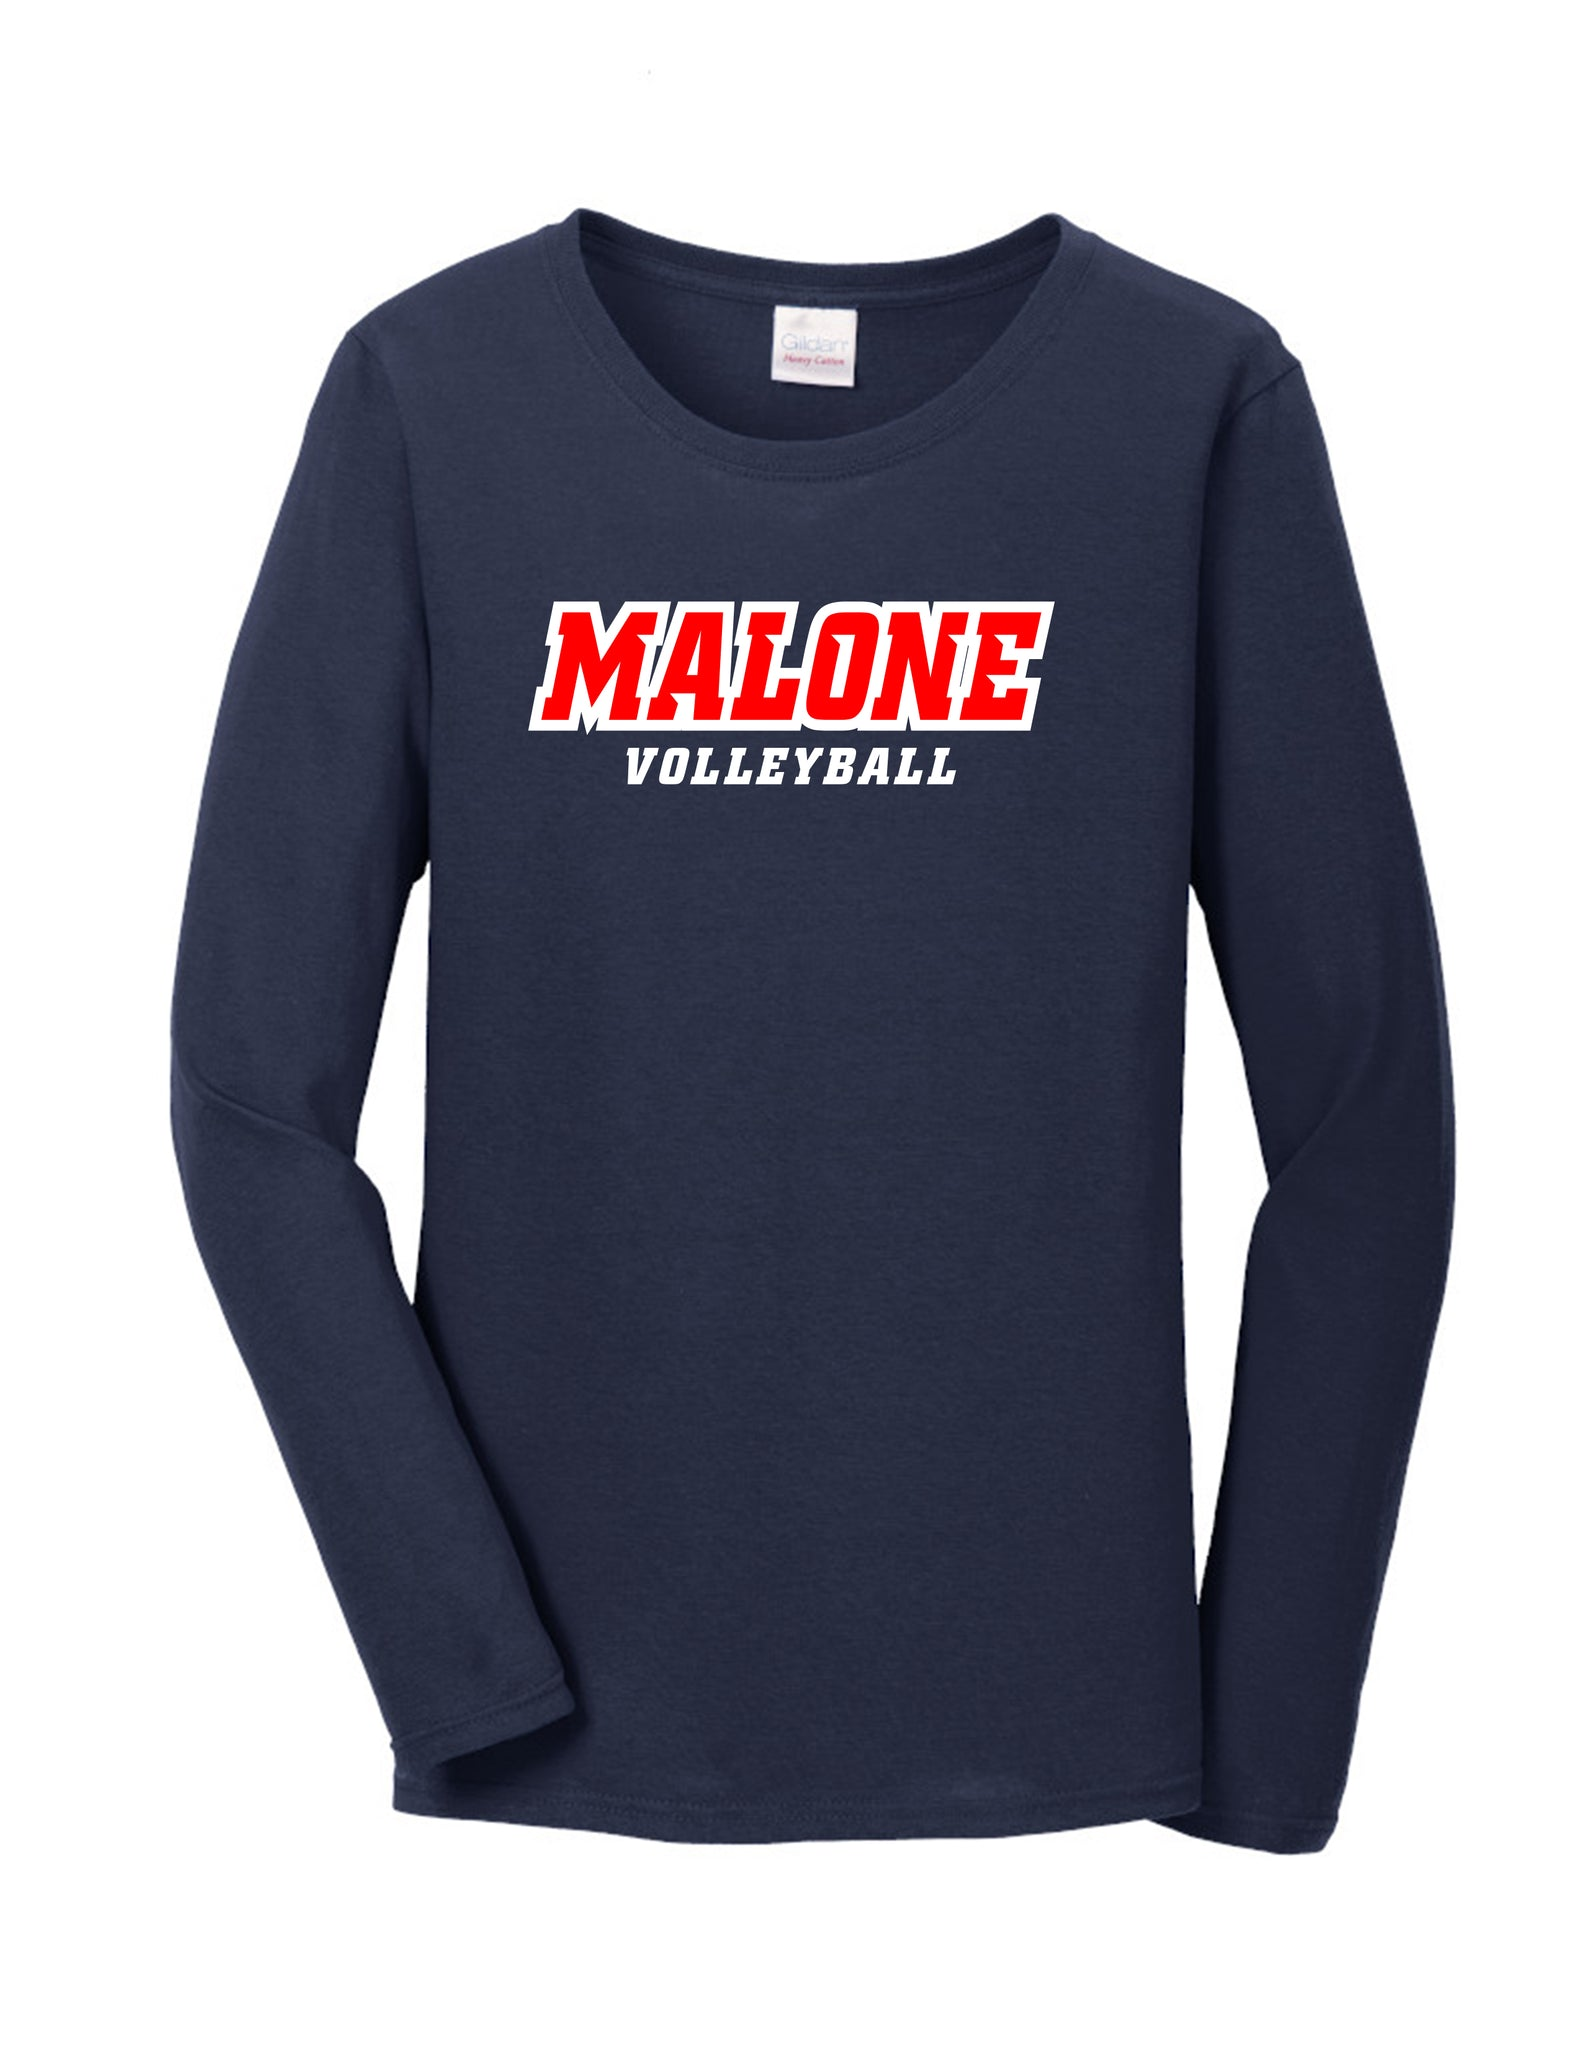 Malone Volleyball Women's Long Sleeve Tee